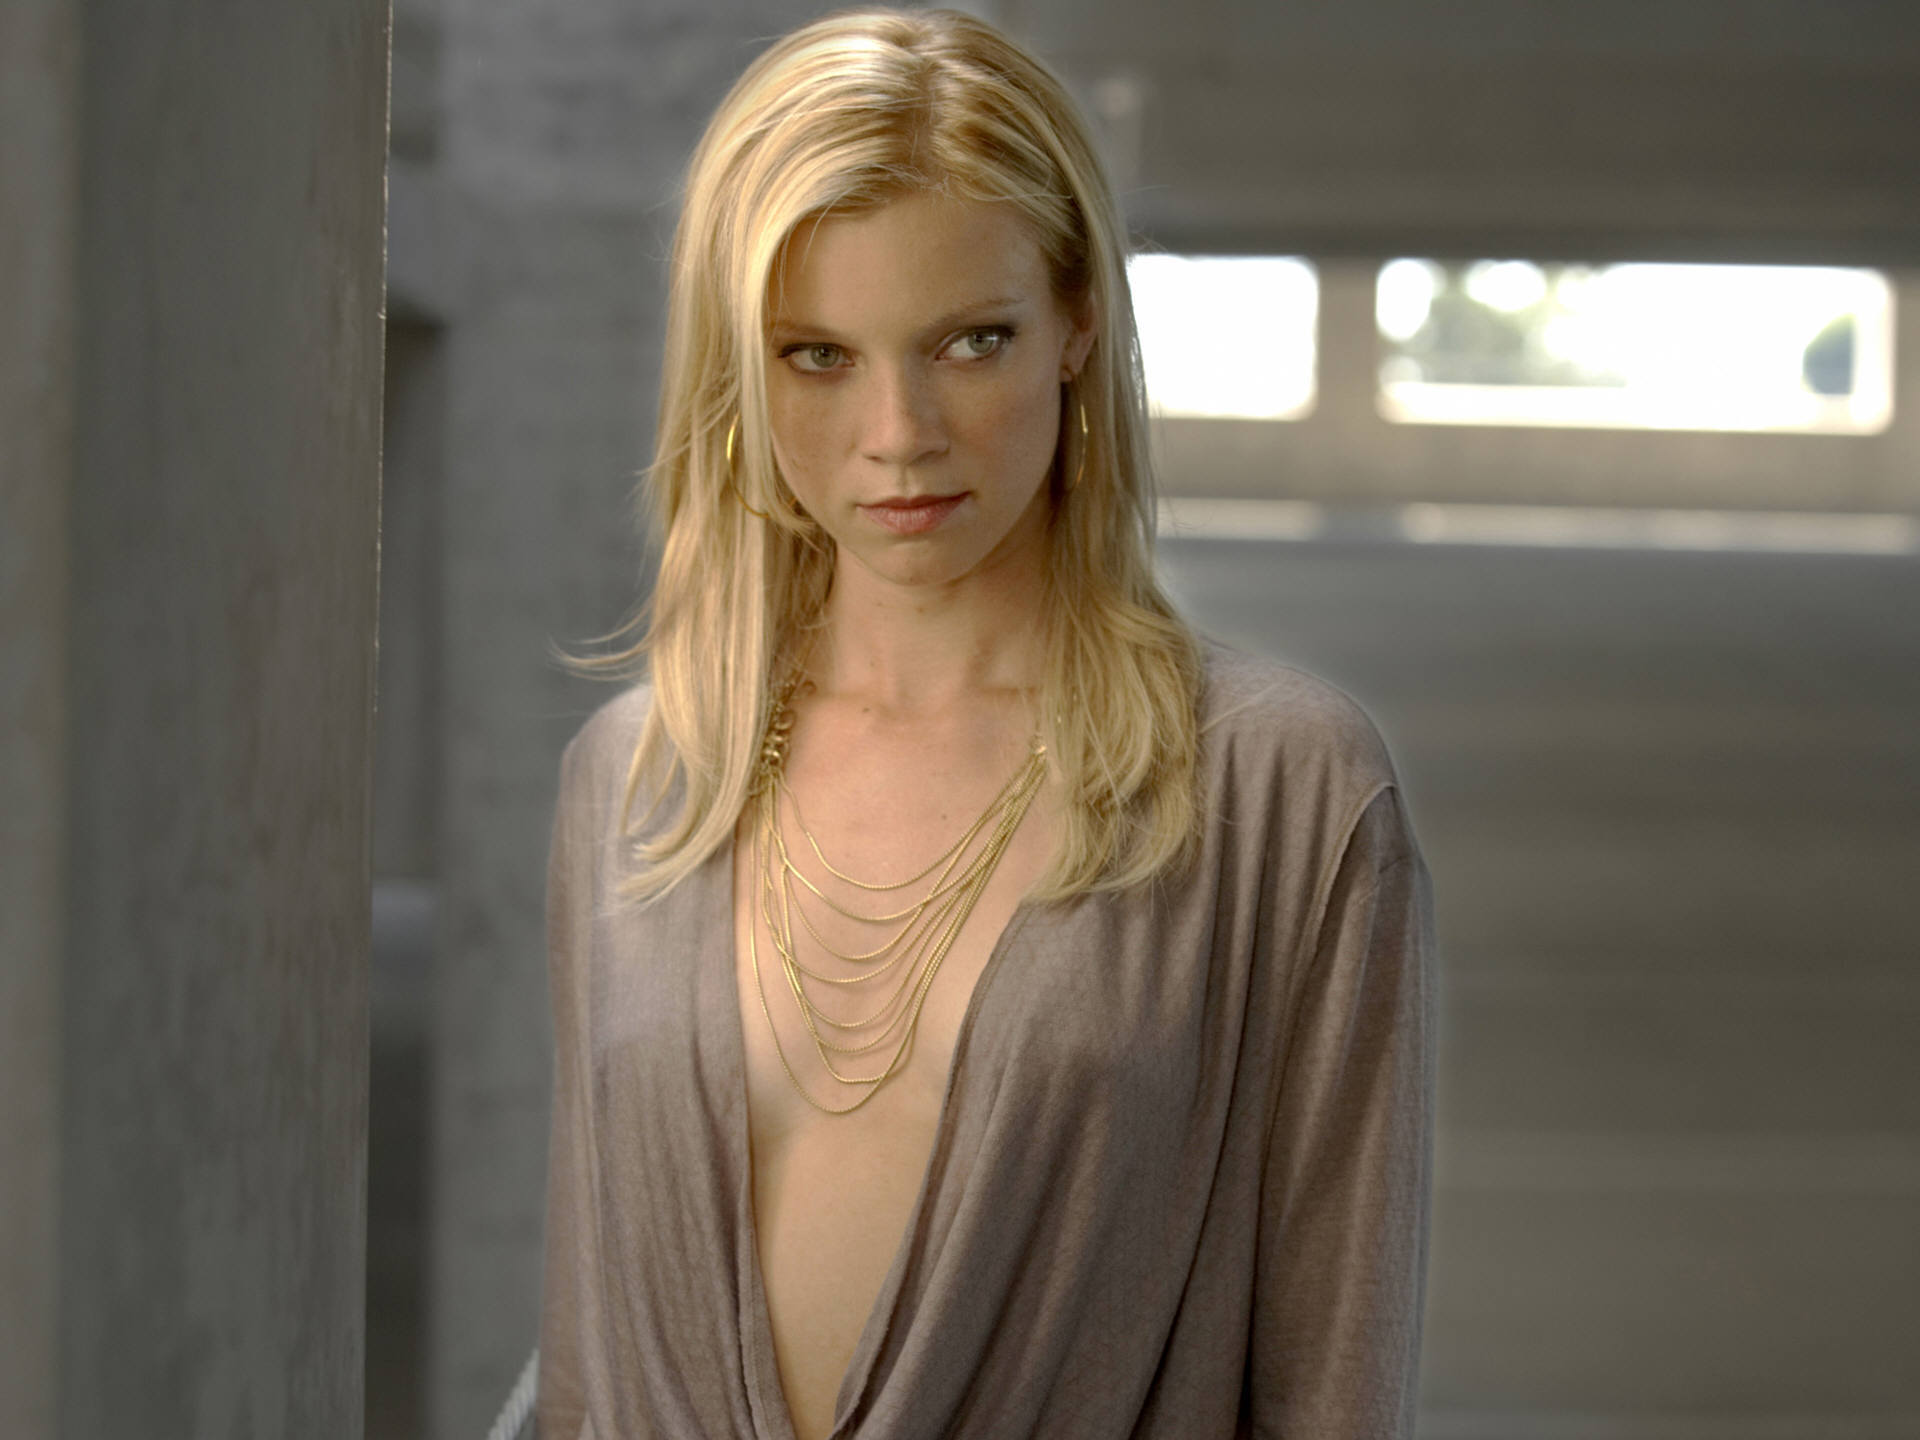 blondes woman amy smart HD Wallpaper